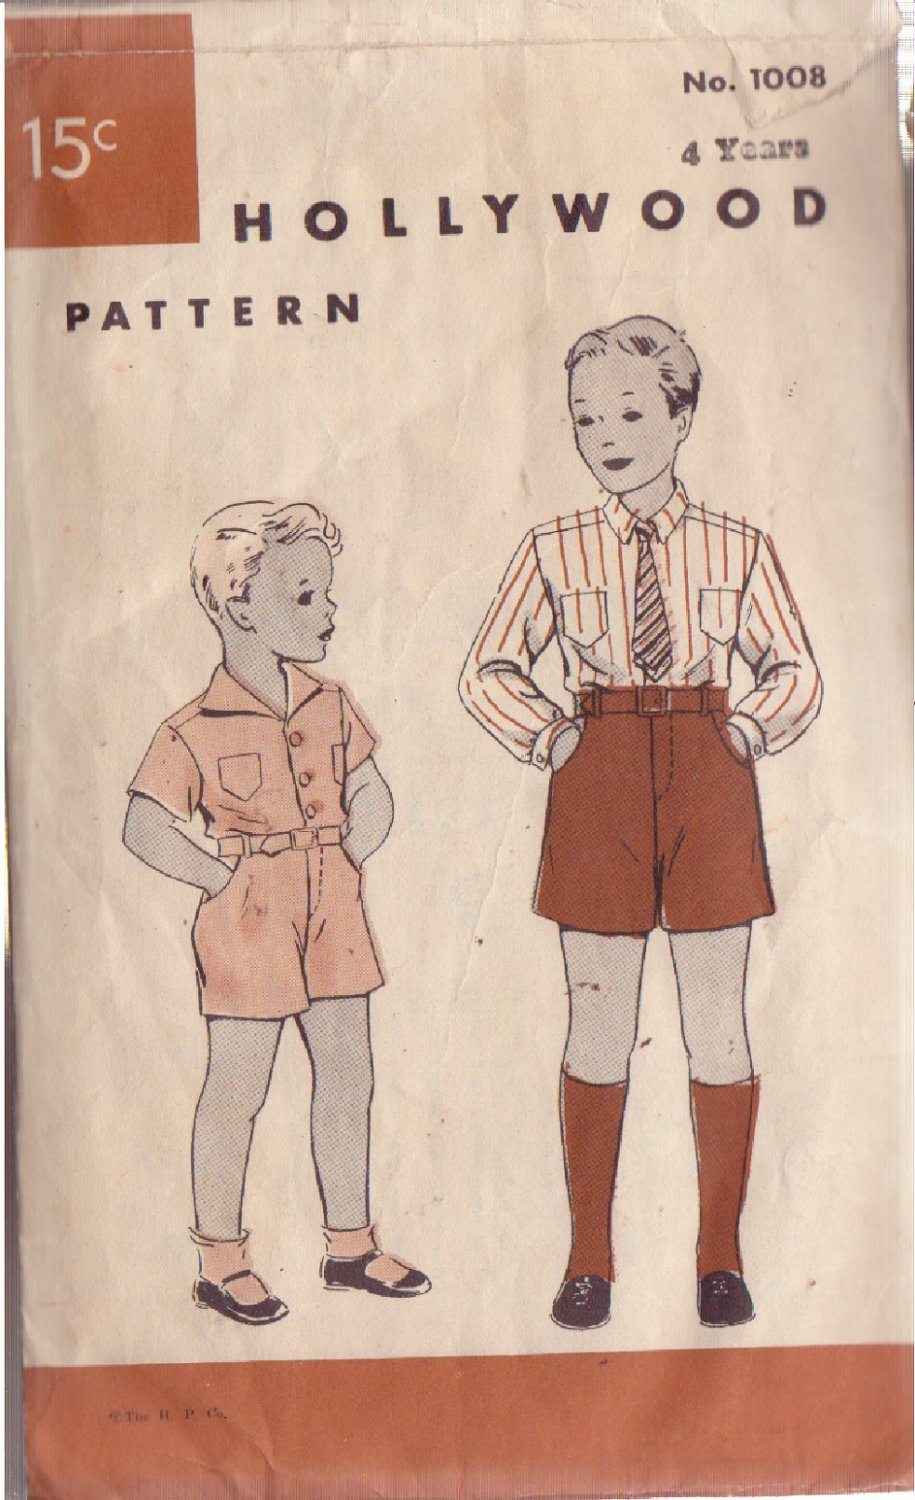 HOLLYWOOD VINTAGE PATTERN 1008 BOY'S SUIT 2 VARIATIONS SIZE 4 YEARS